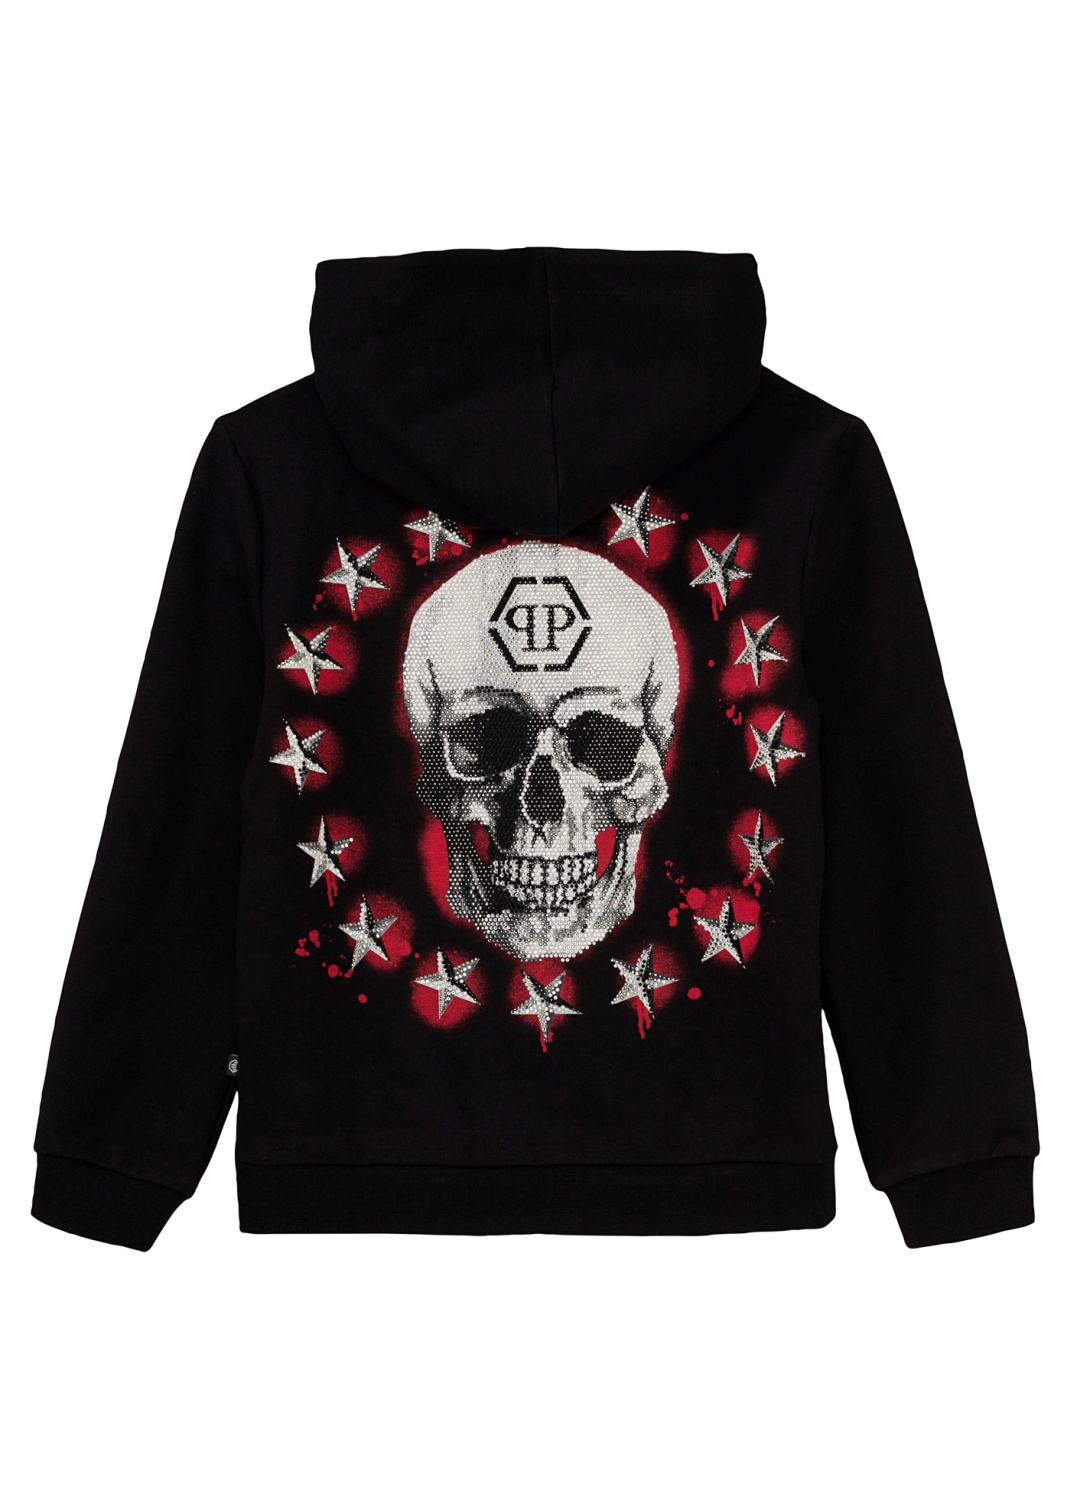 Skull Zip Jacket image number 1